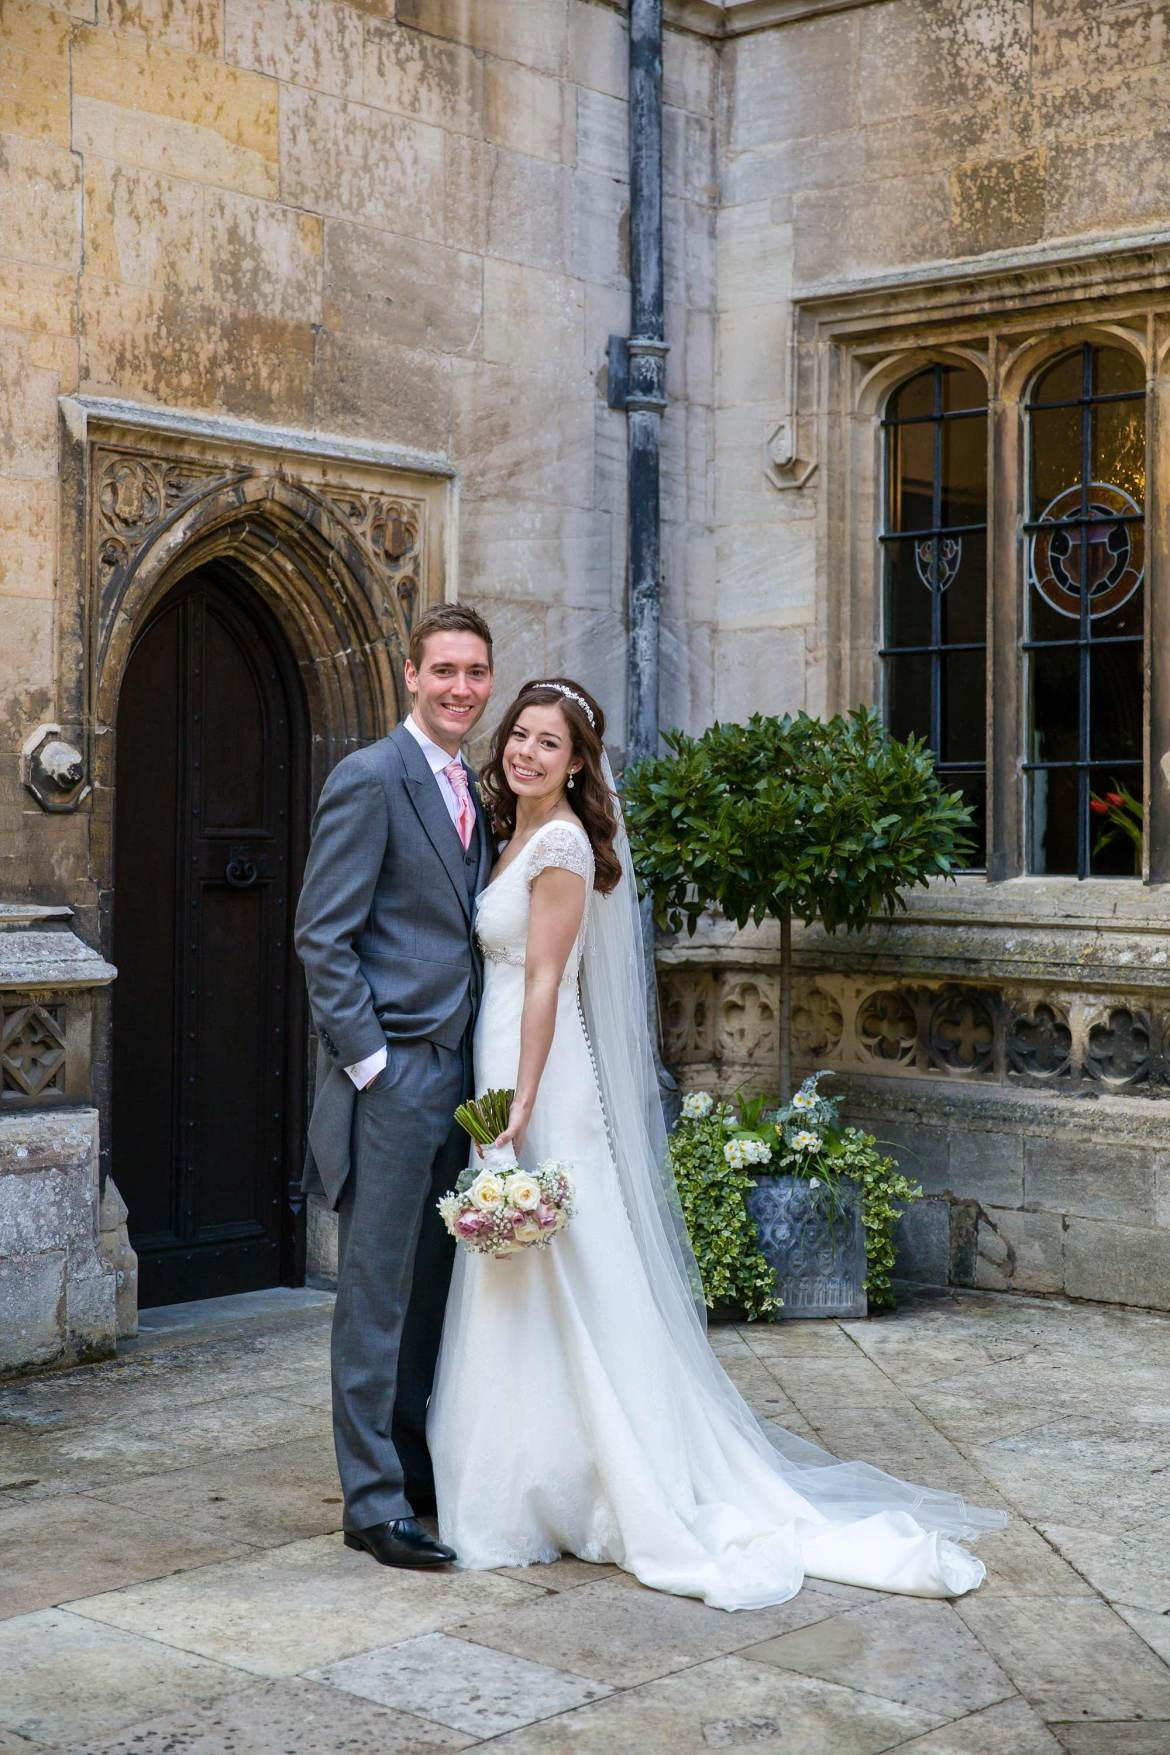 A full length portrait of Amy and Jack in the courtyard of Hengrave Hall.